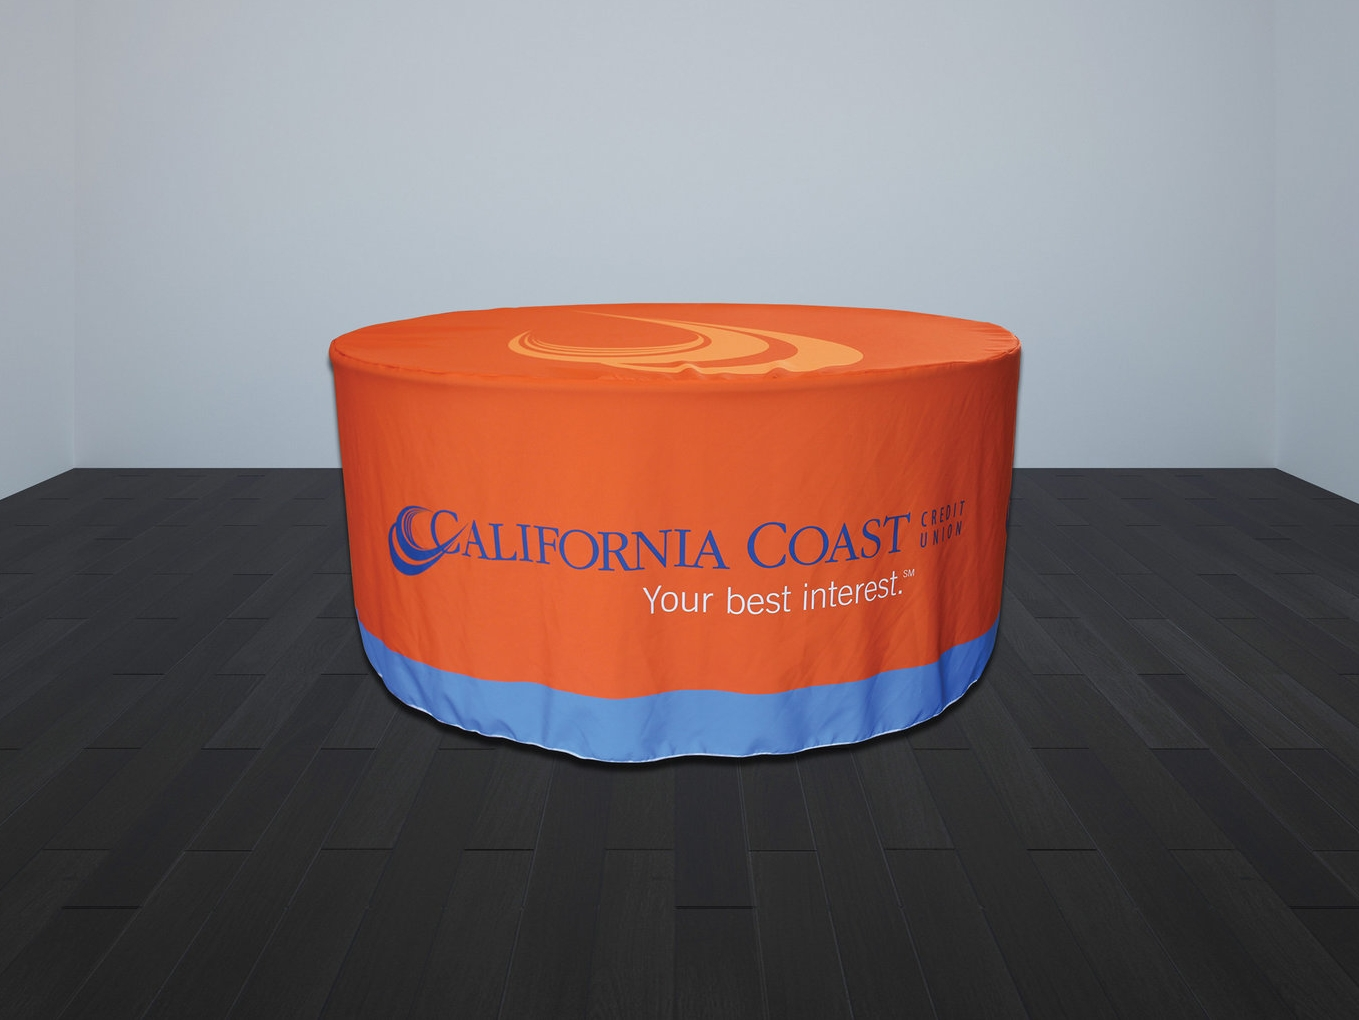 California Coast Round Table Cover Background.jpg